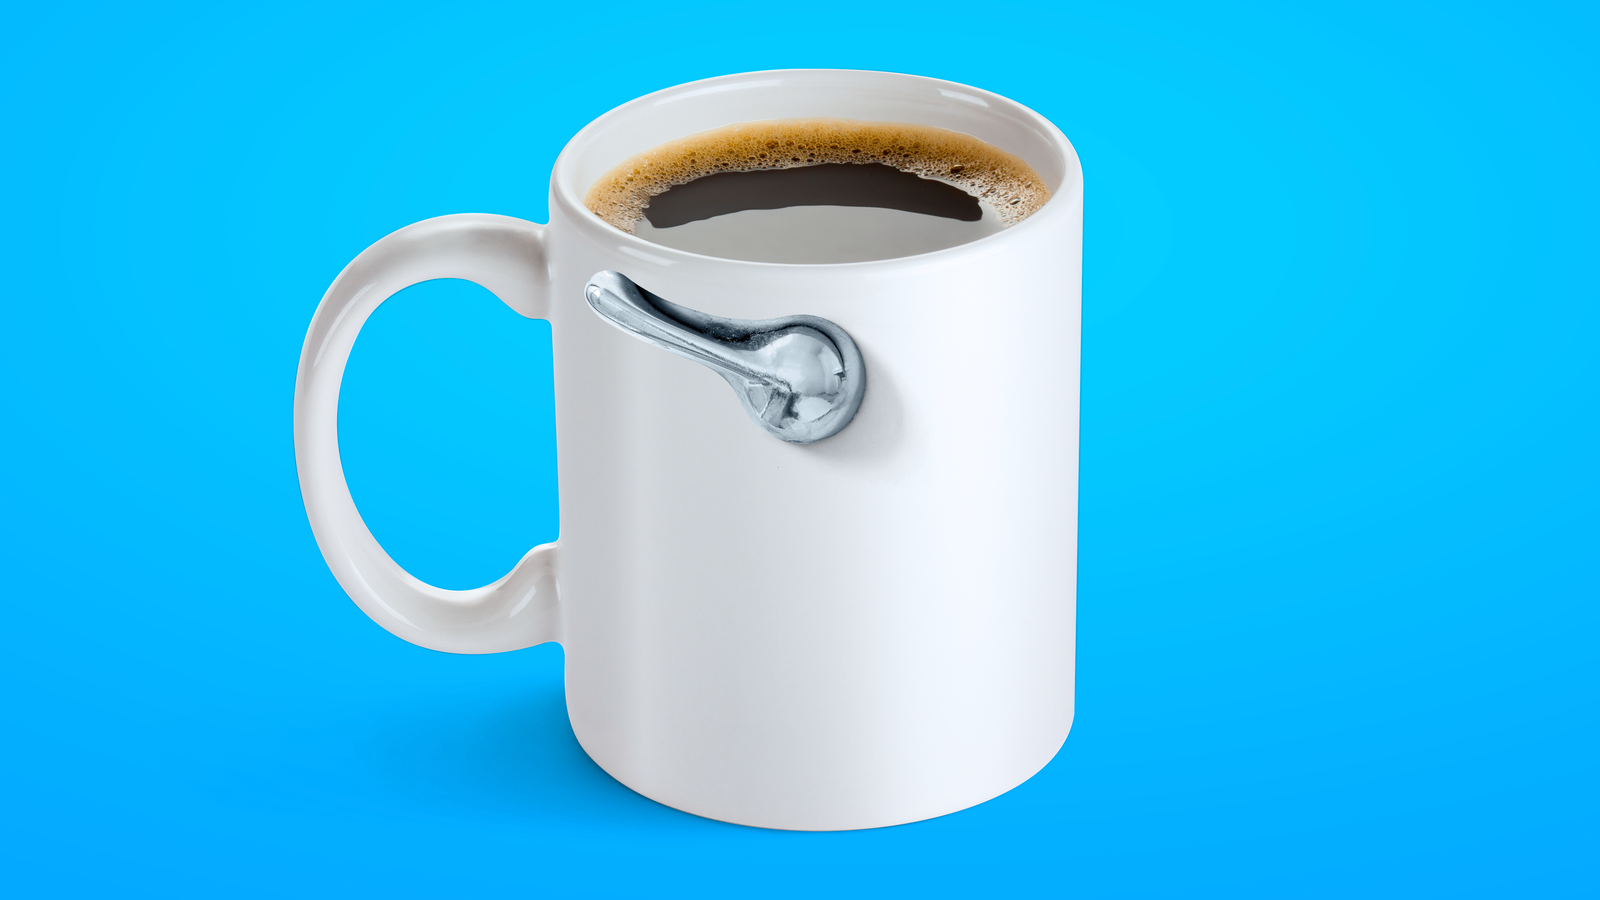 Why Does Coffee Make Us Poop? Scientists Gave Coffee to Rats to Find Out